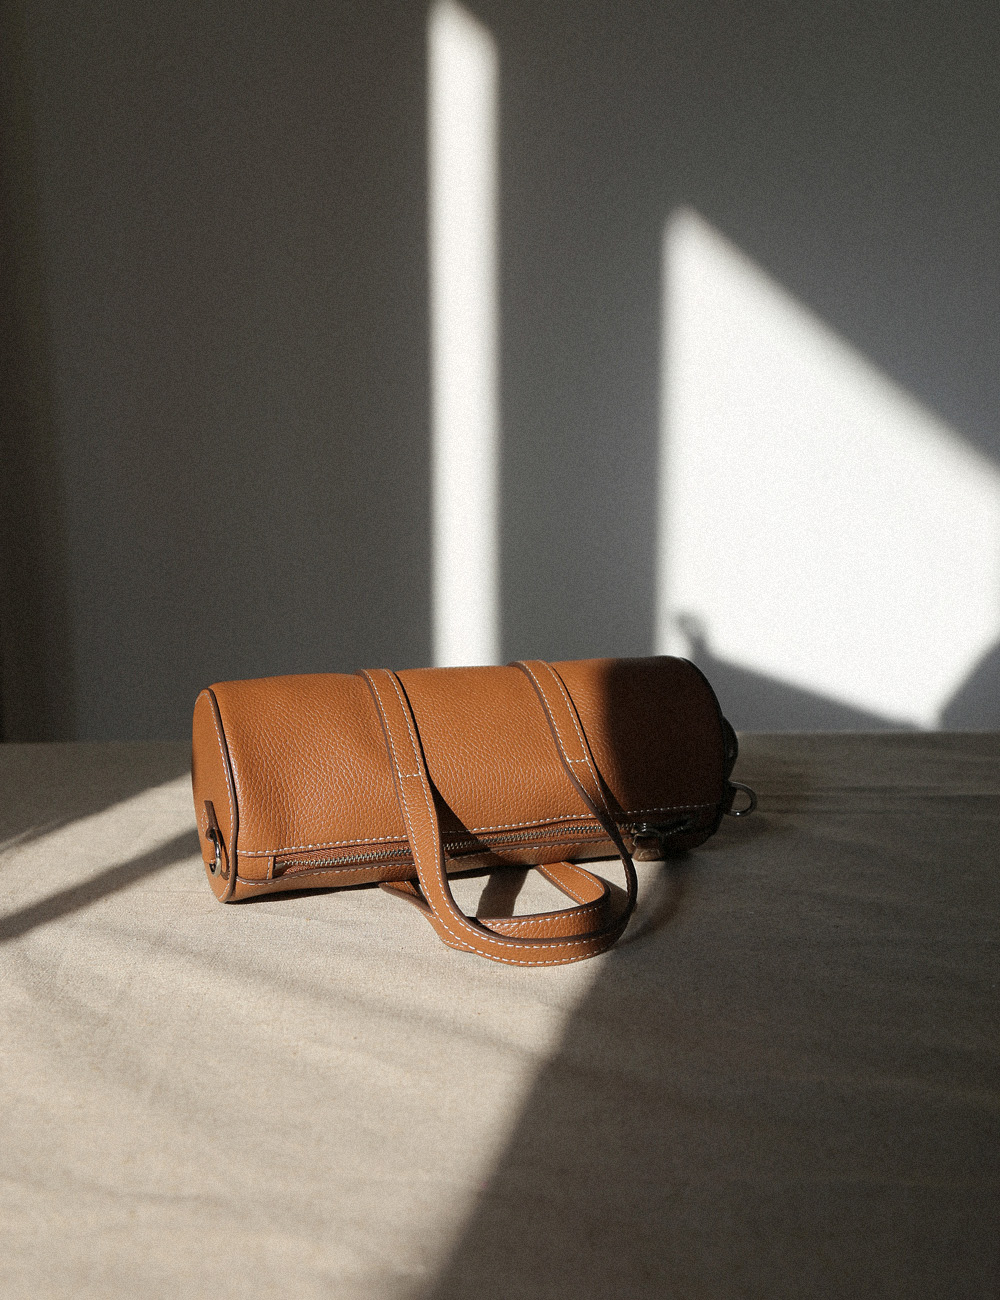 MAISON246,[NEW] 246 BARREL MINI TOTE BAG - TAN,No.246